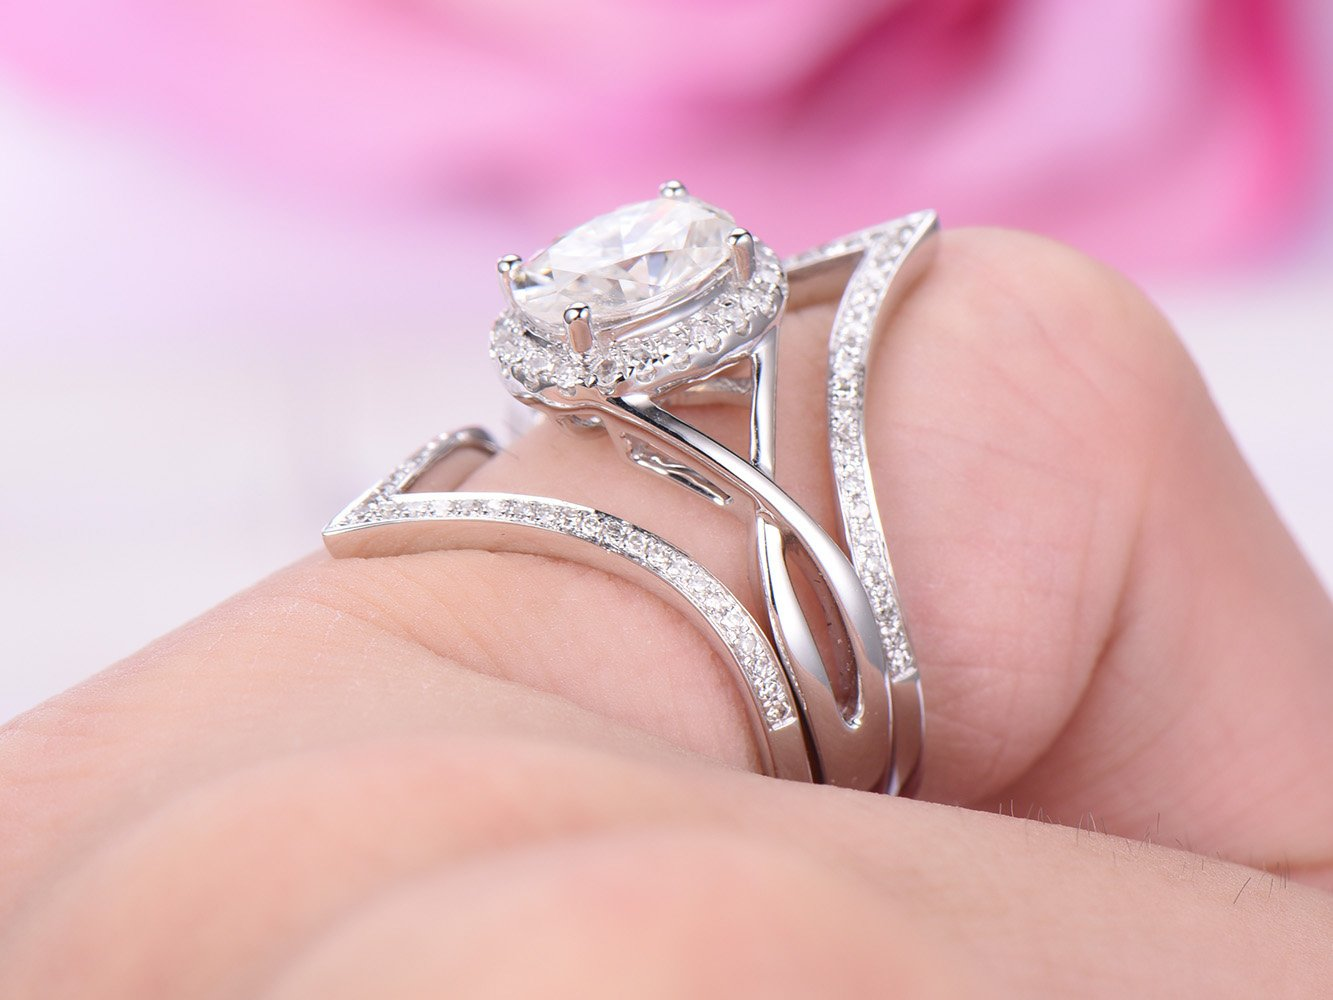 Amazon.com: Oval Moissanite Engagement Ring Set Pave Diamond Chevron ...